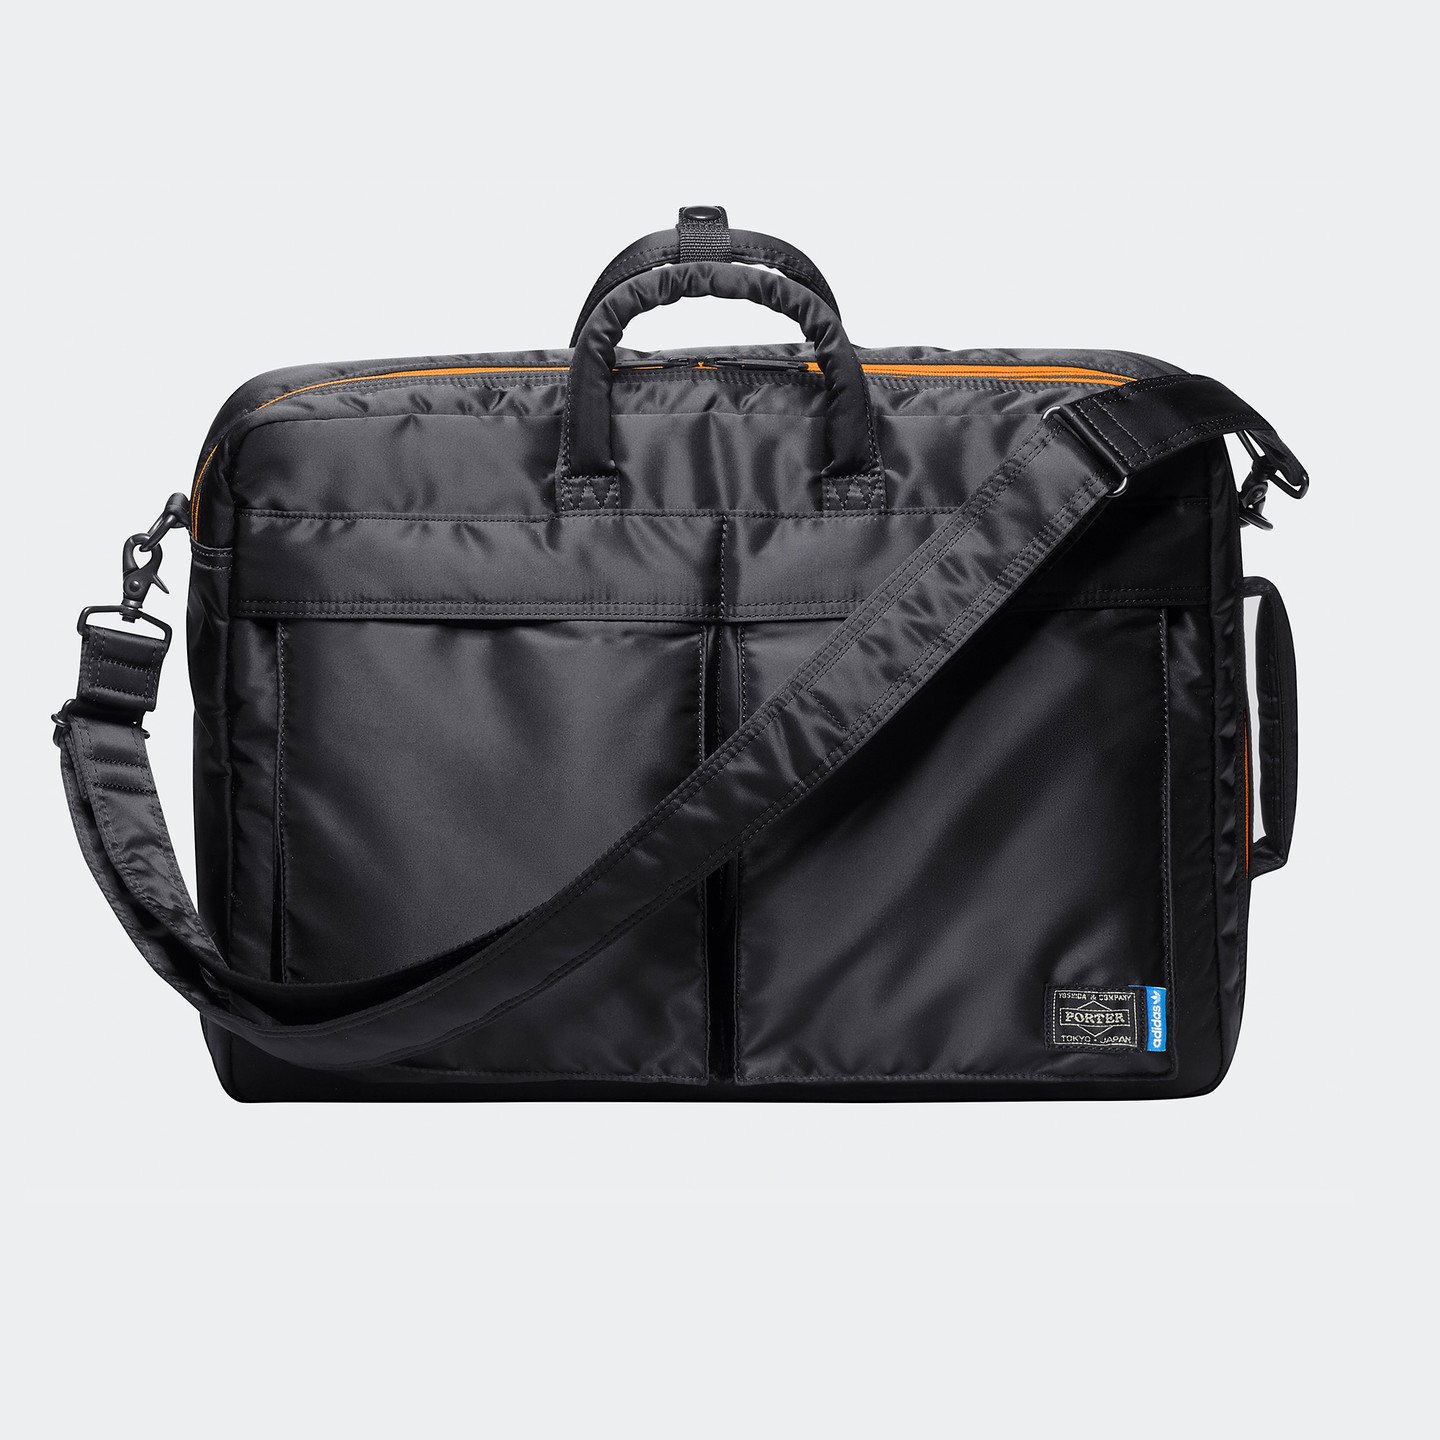 Adidas 3-Way Brief Case x Porter Core Black / Bright Orange / Blue CJ5748